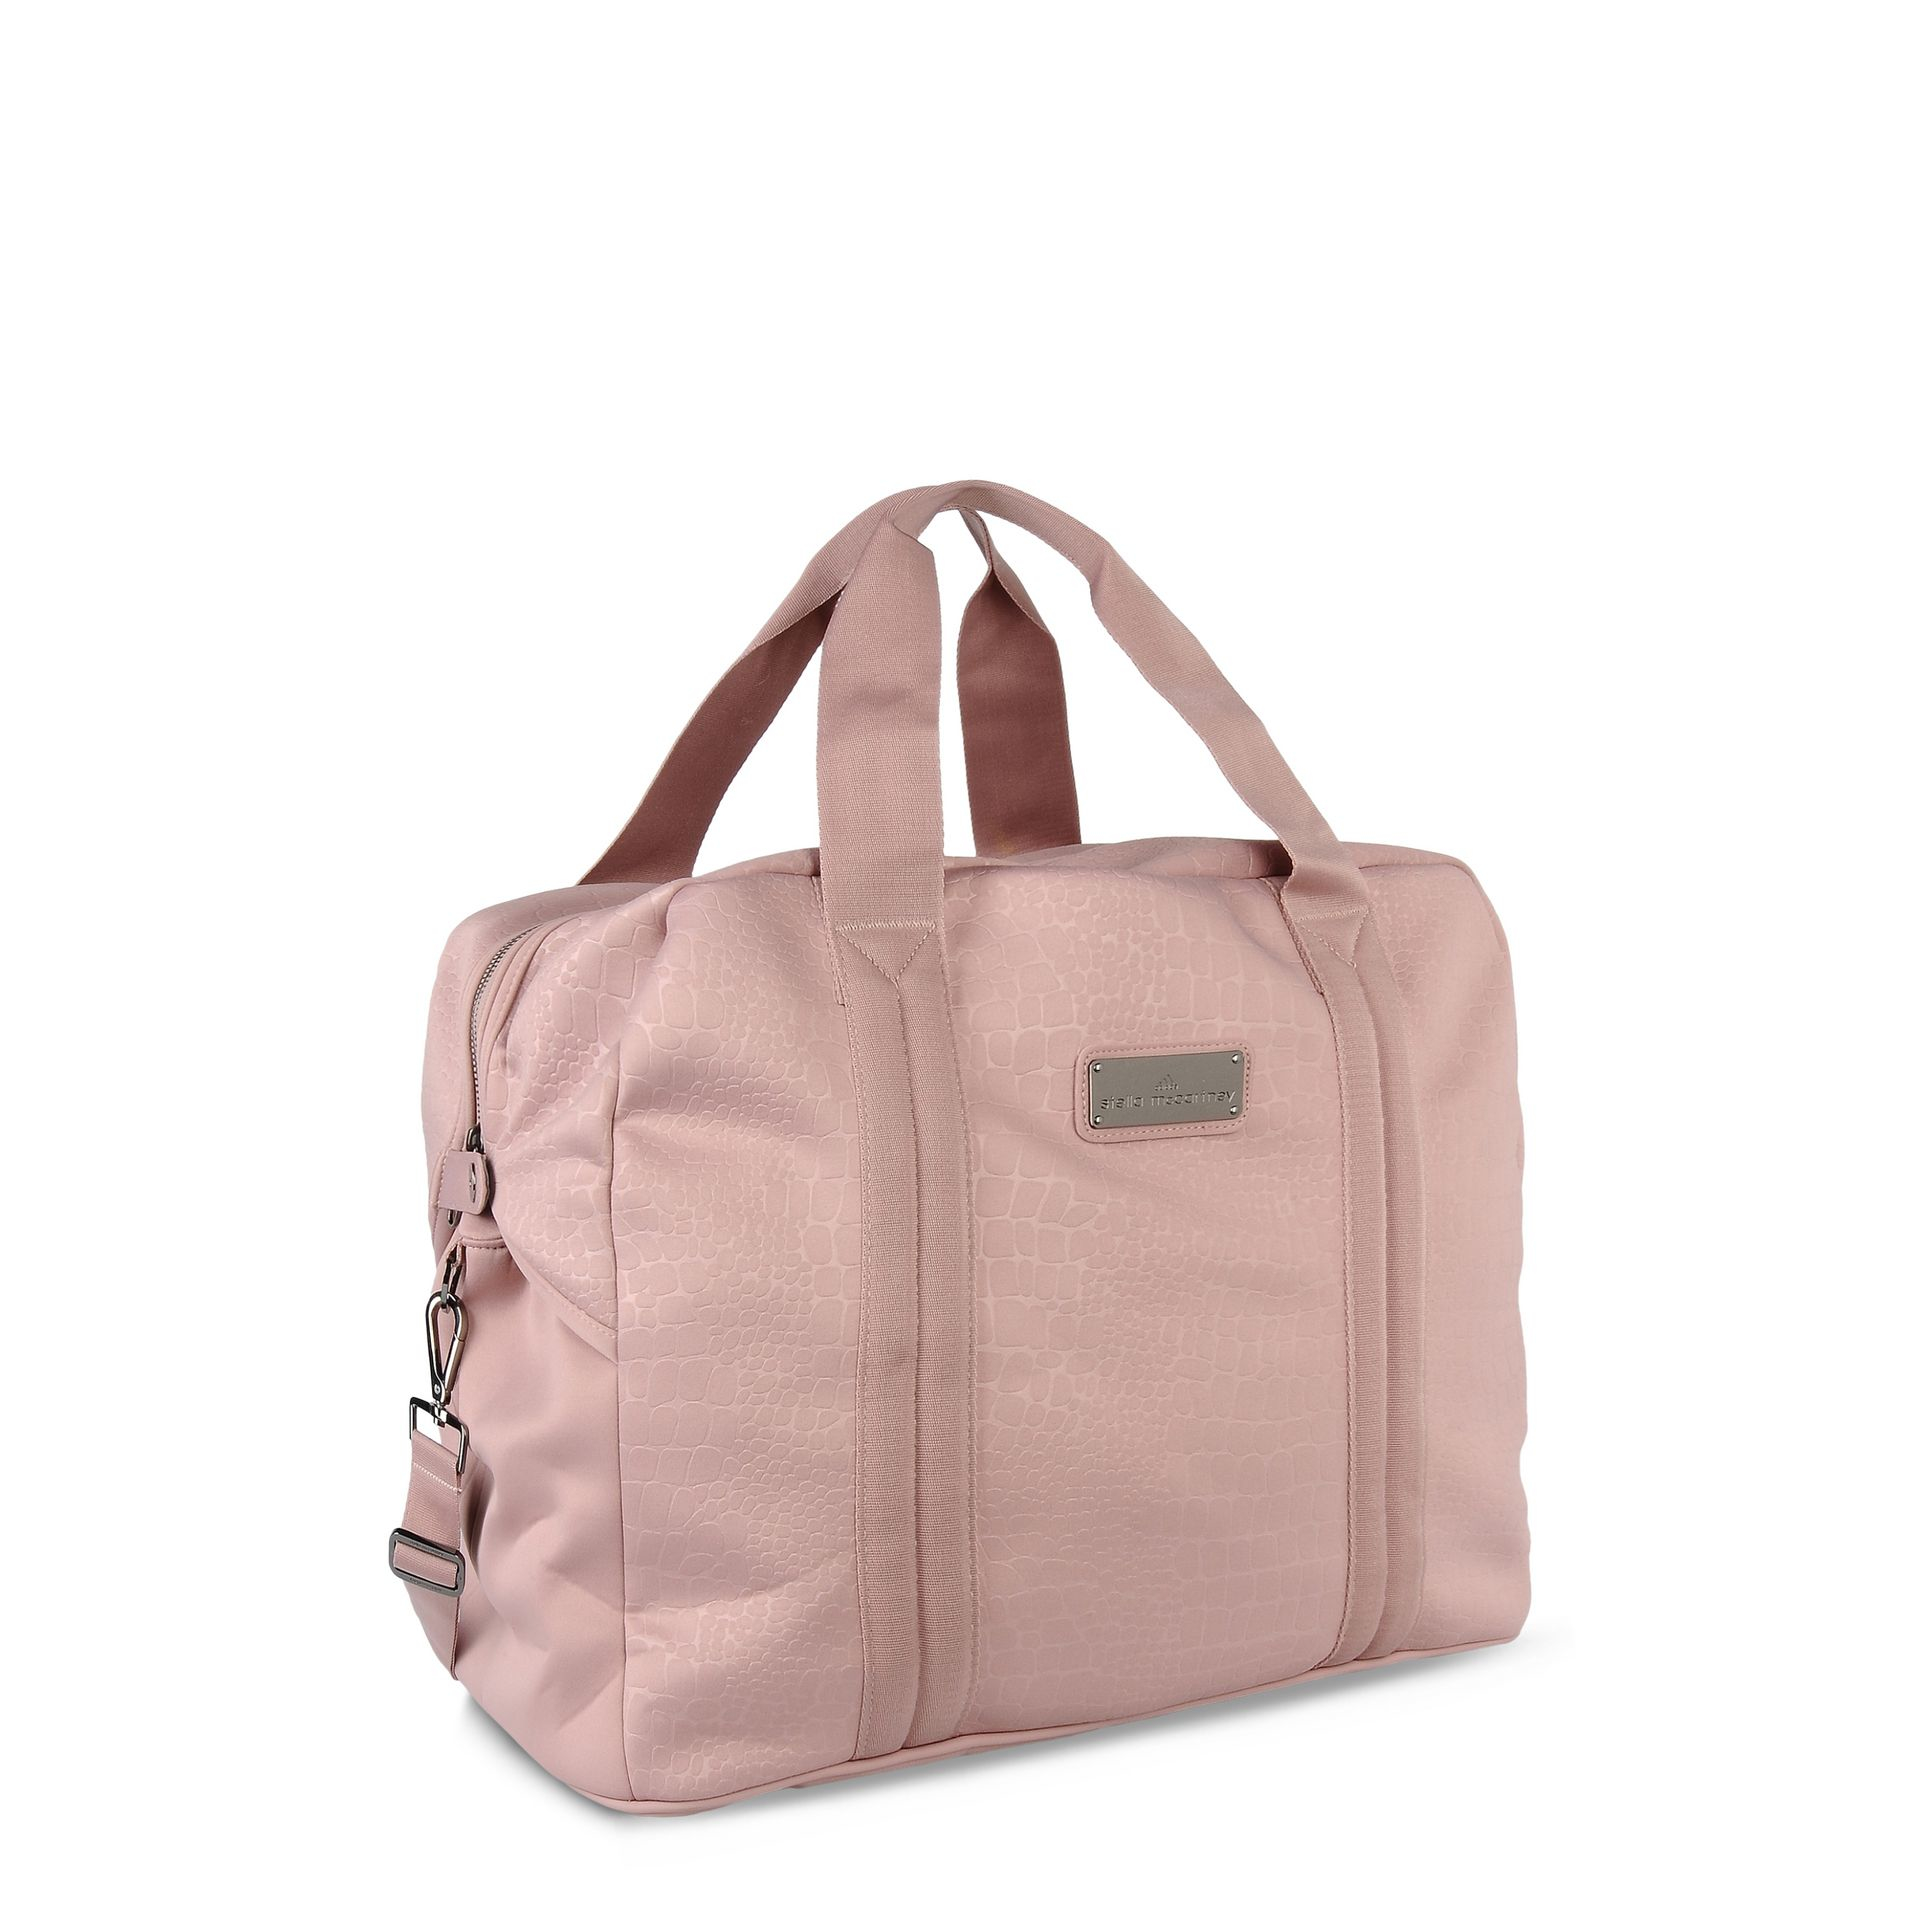 Lyst - adidas By Stella McCartney Pink Essentials Sports Bag in Pink ebb9fa140f84c